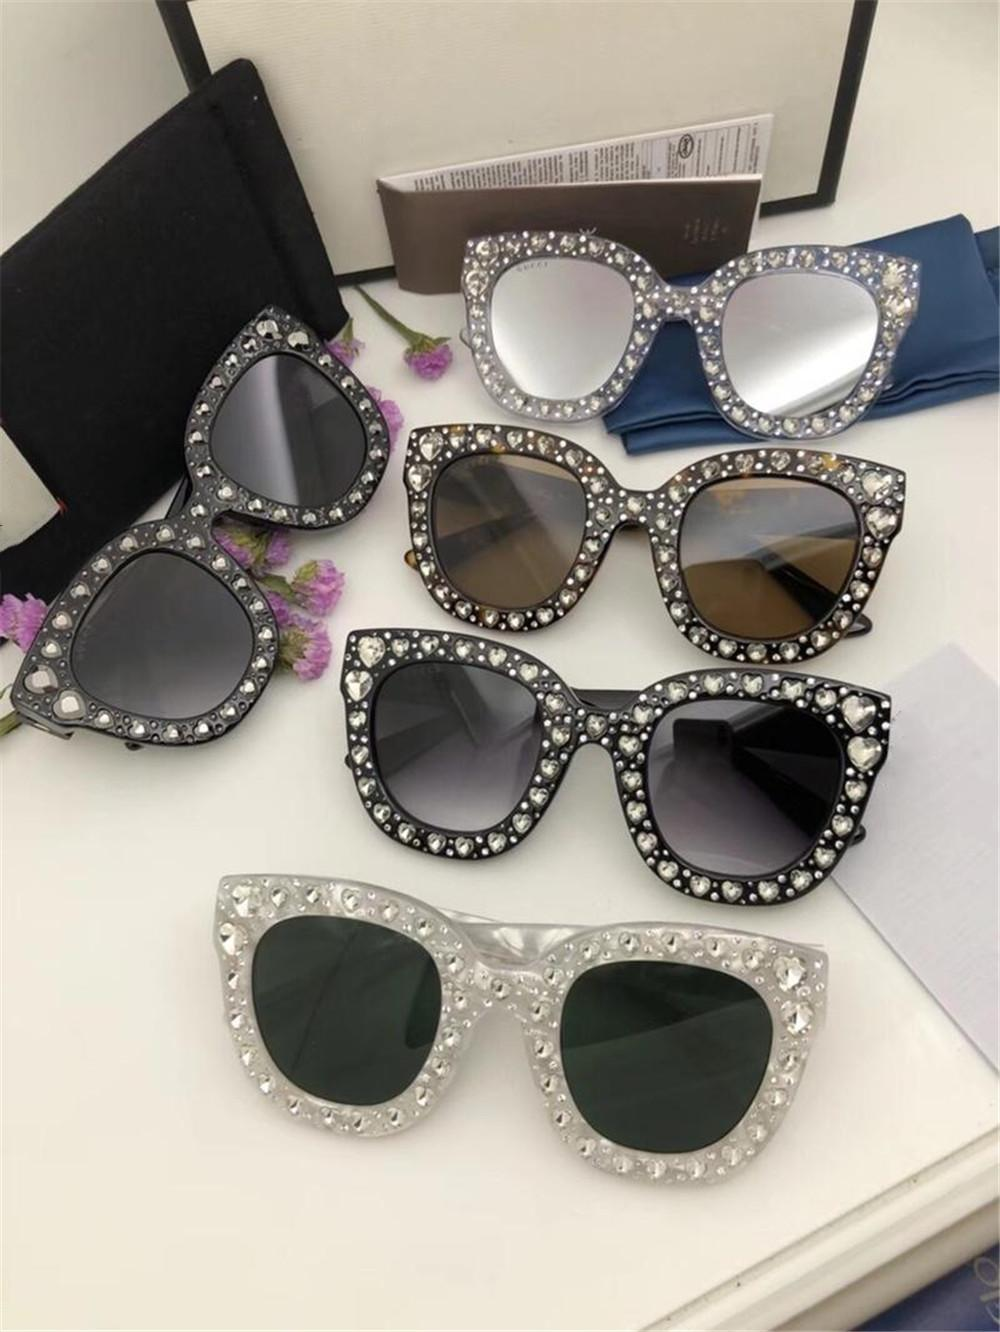 d2960bf8d61 2019 Women Popular Sunglasses Luxury Italy Designer Cat Eye Glasses High  Quality UV Protection Love Heart Diamond Eyewear With Case And Box Glasses  Online ...